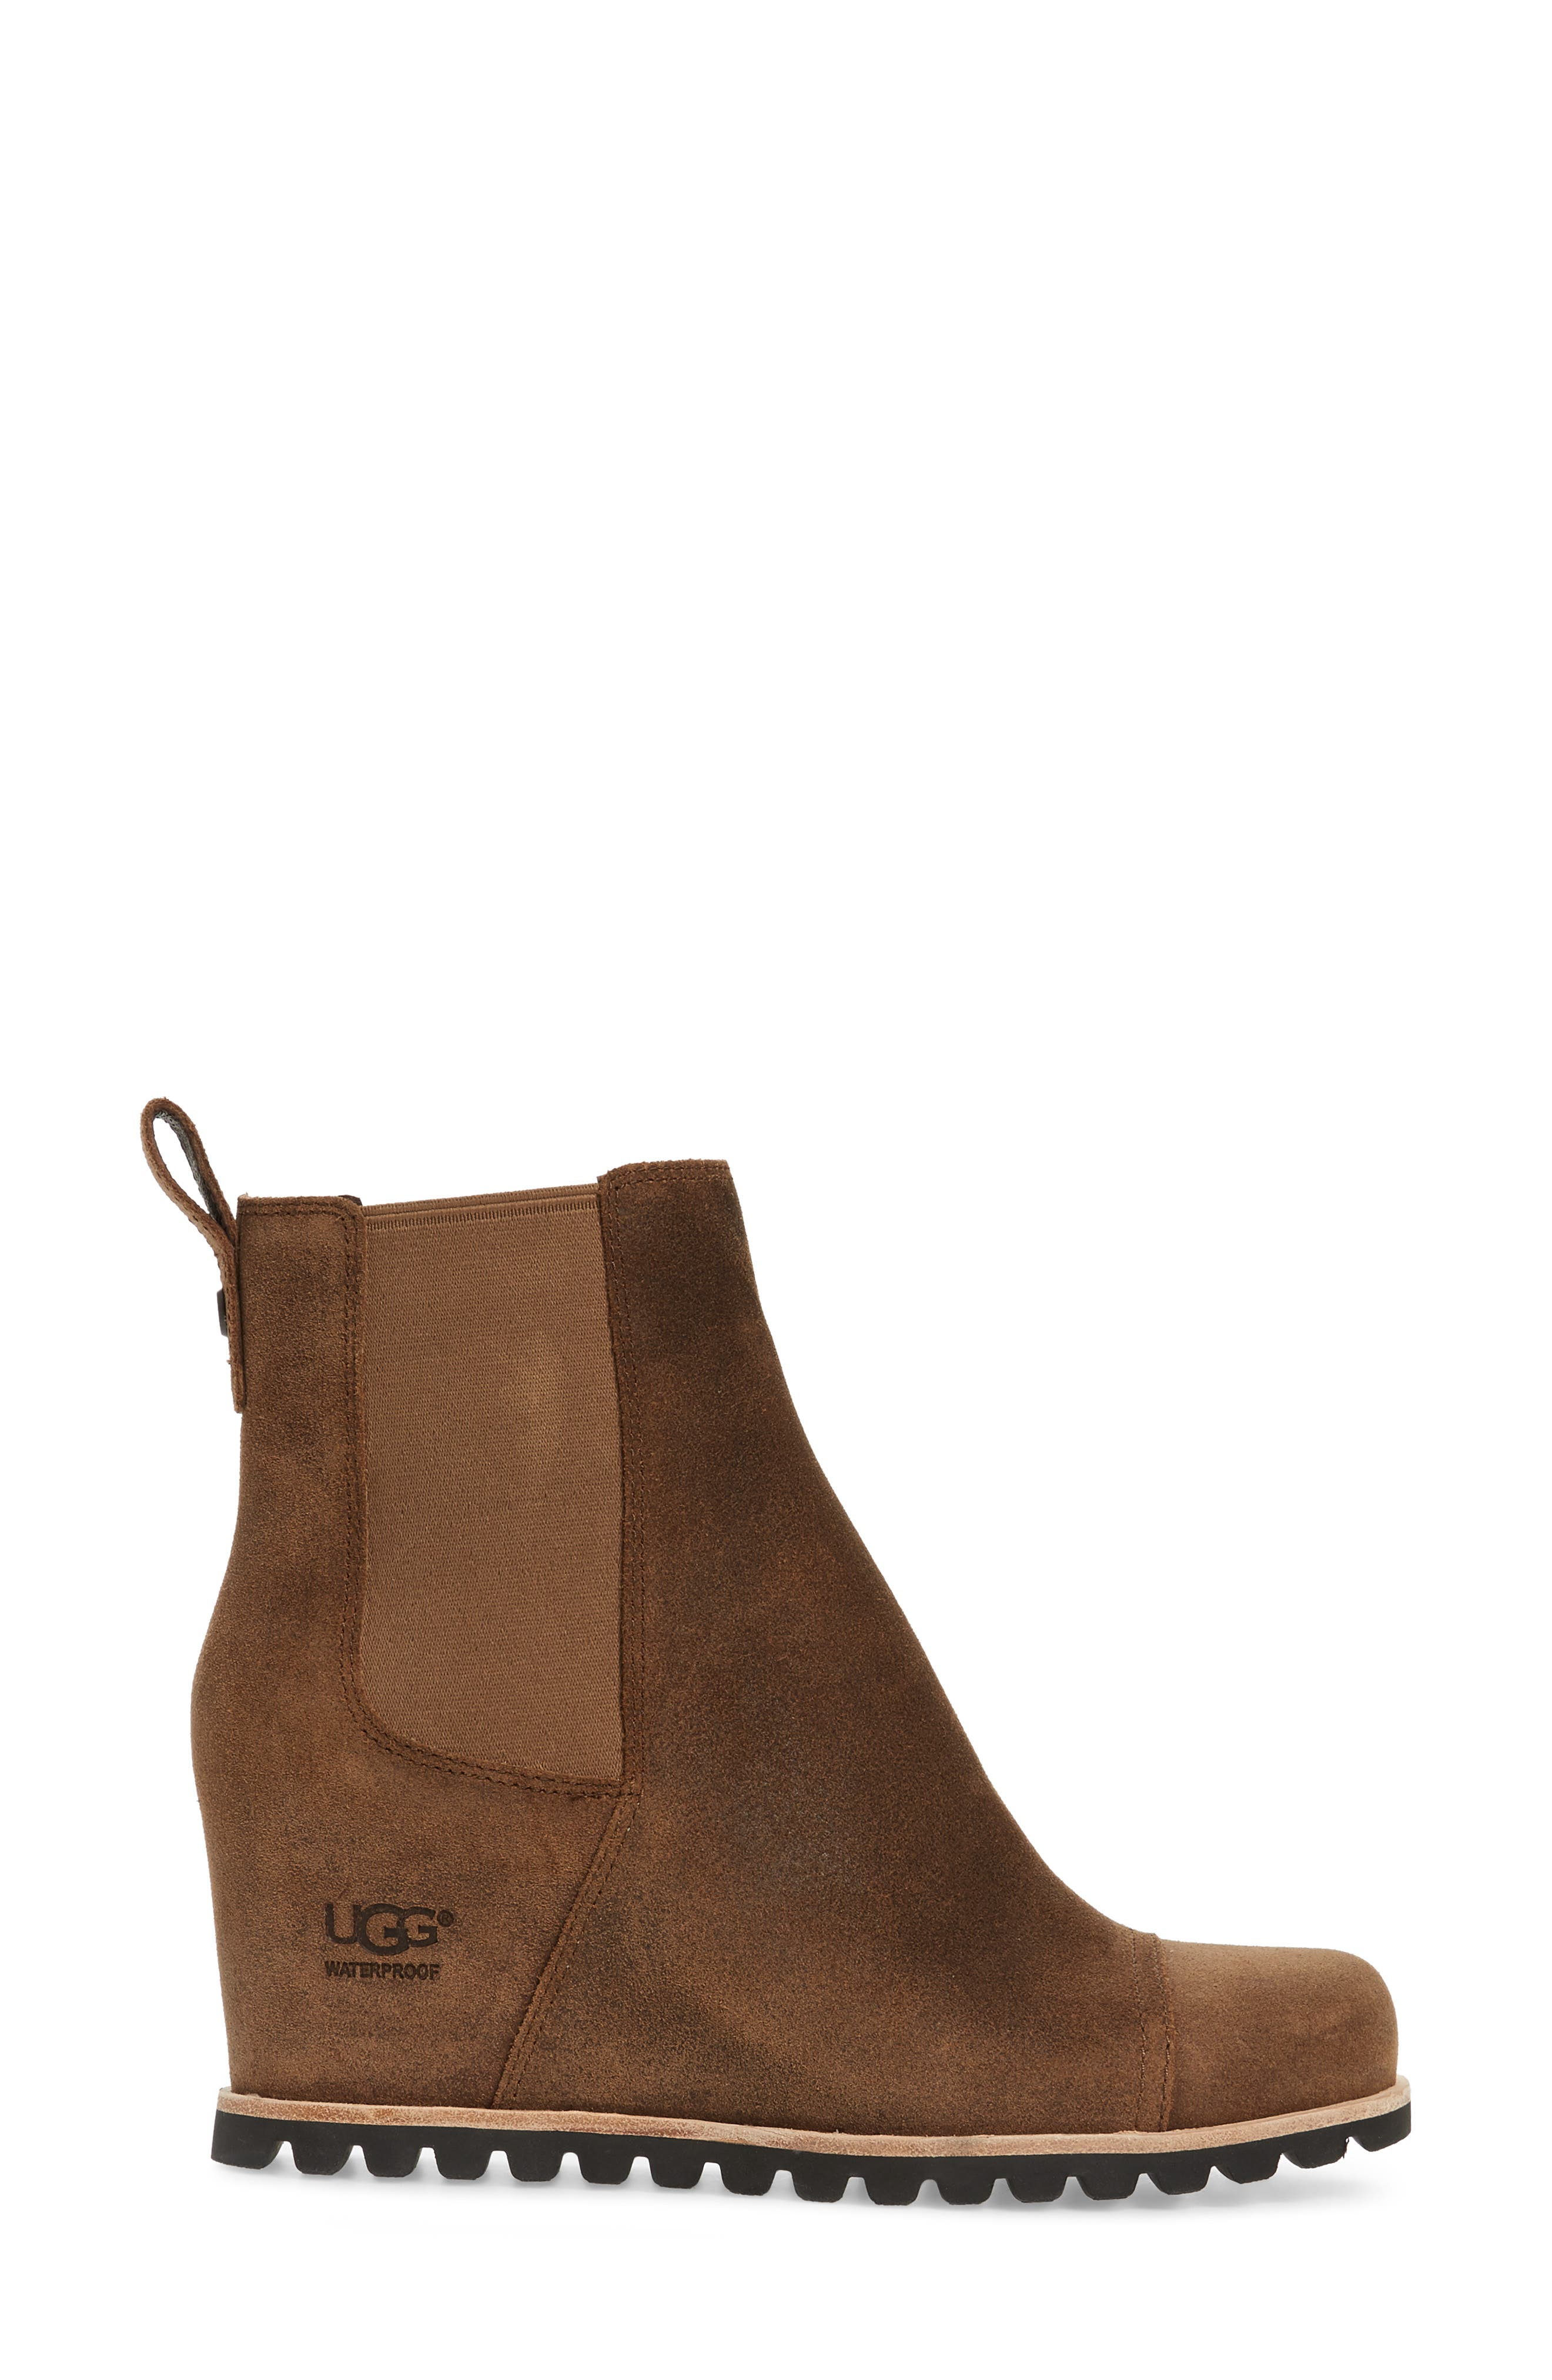 UGG<SUP>®</SUP>, Pax Waterproof Wedge Boot, Alternate thumbnail 3, color, 213